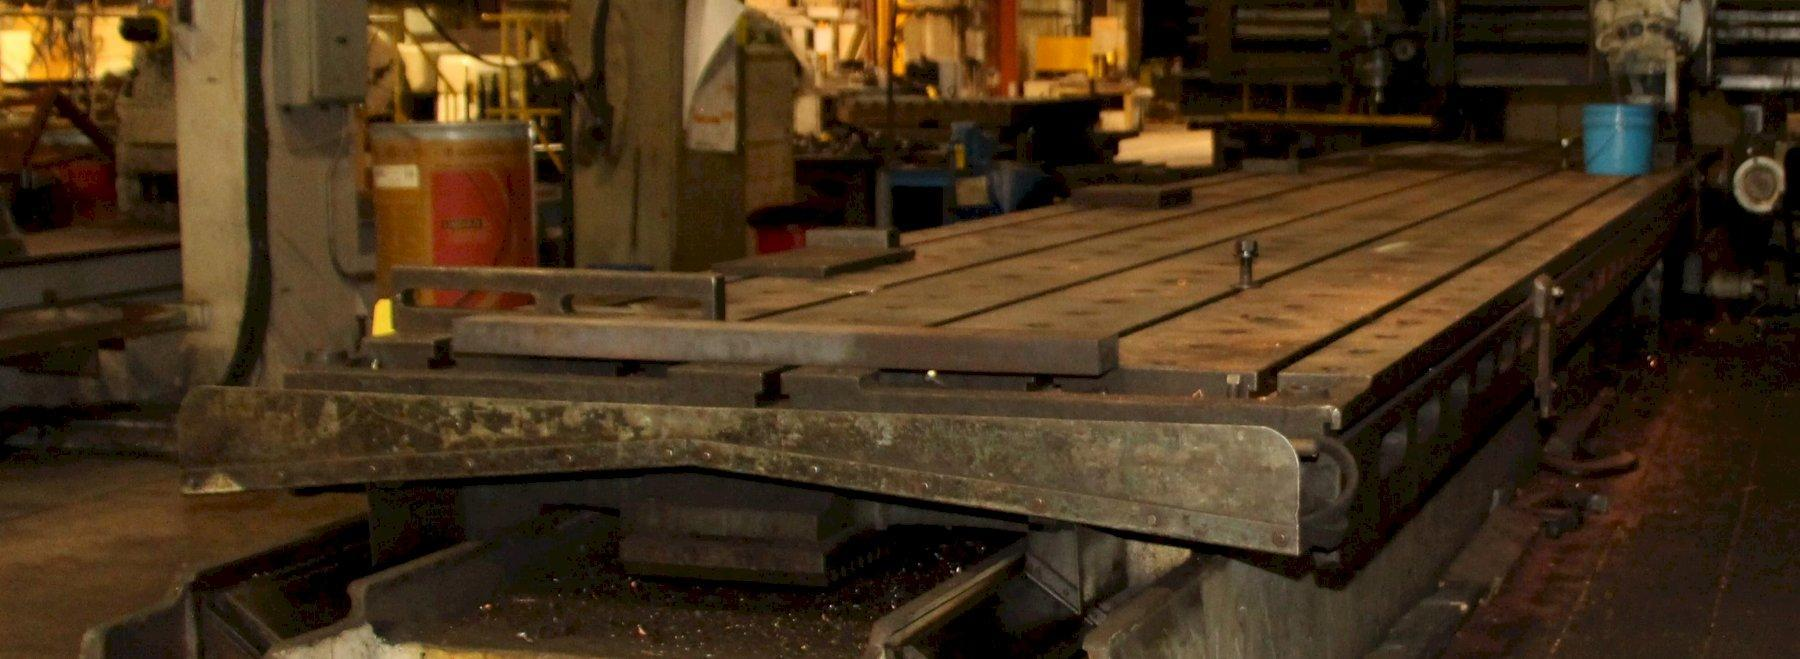 "66"" X 360"" T-SLOTTED TABLE: STOCK 11839"